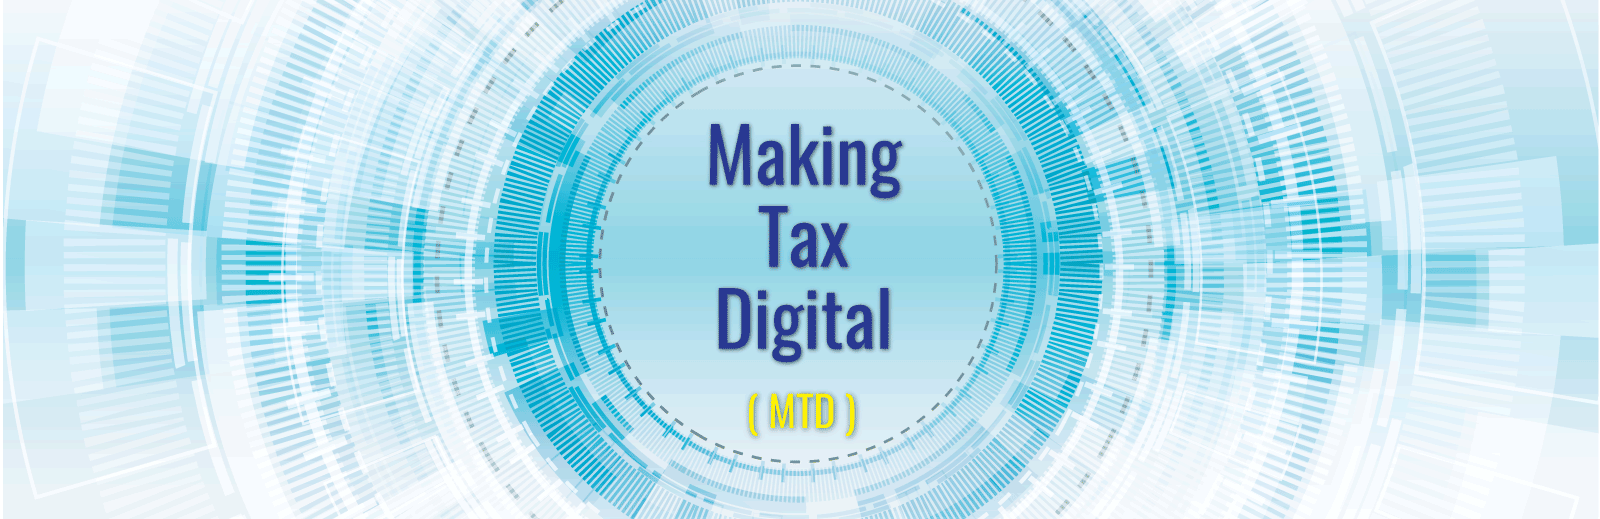 Making Tax Digital 2020